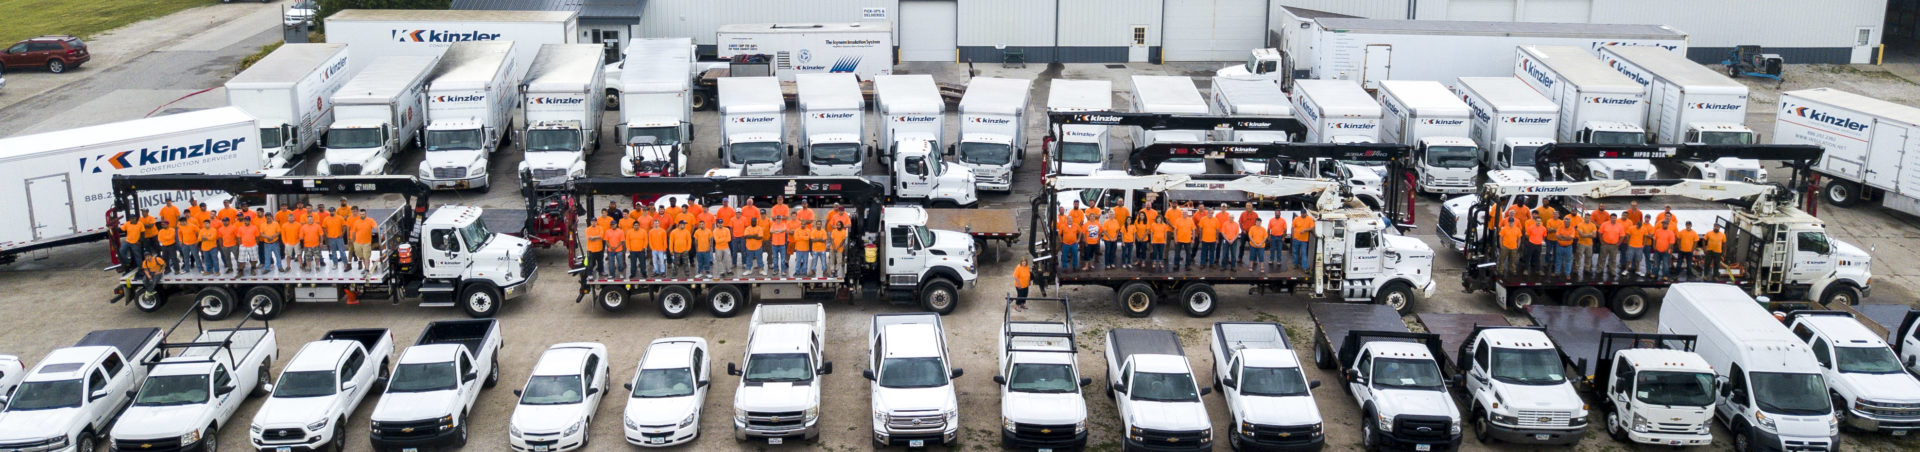 Products Amp Services Kinzler Construction Services